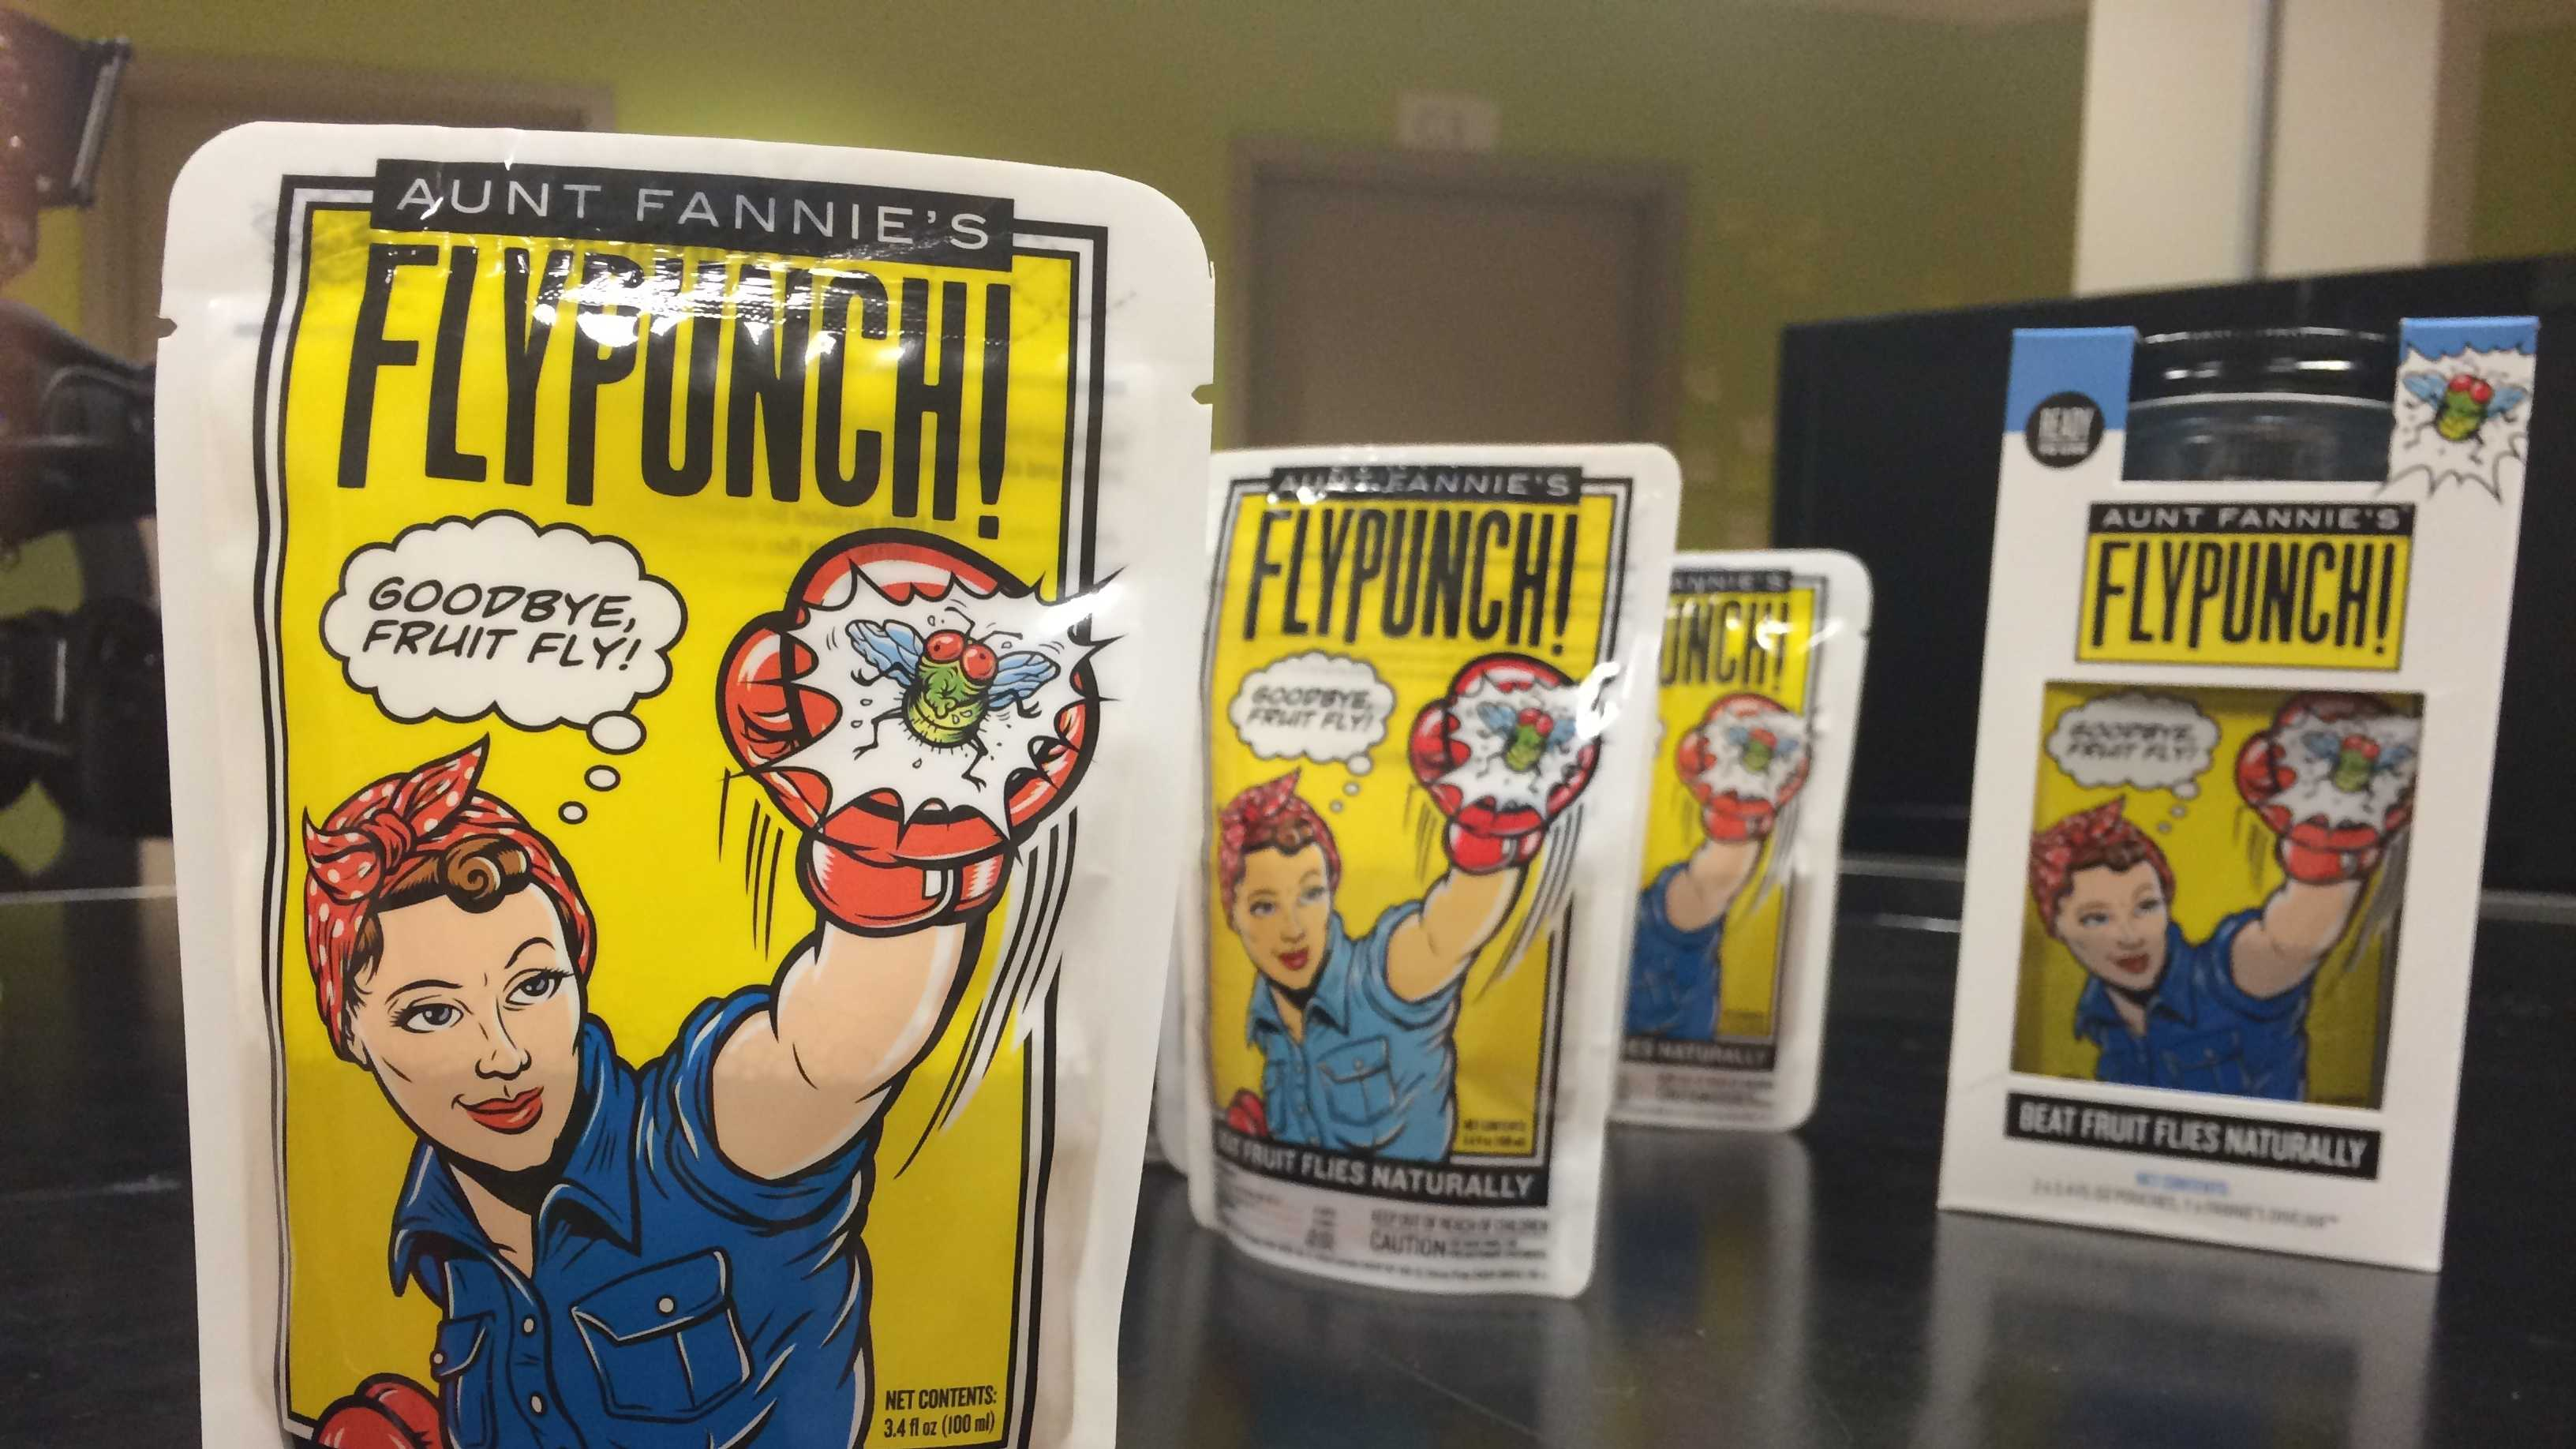 Aunt Fannie's FlyPunch